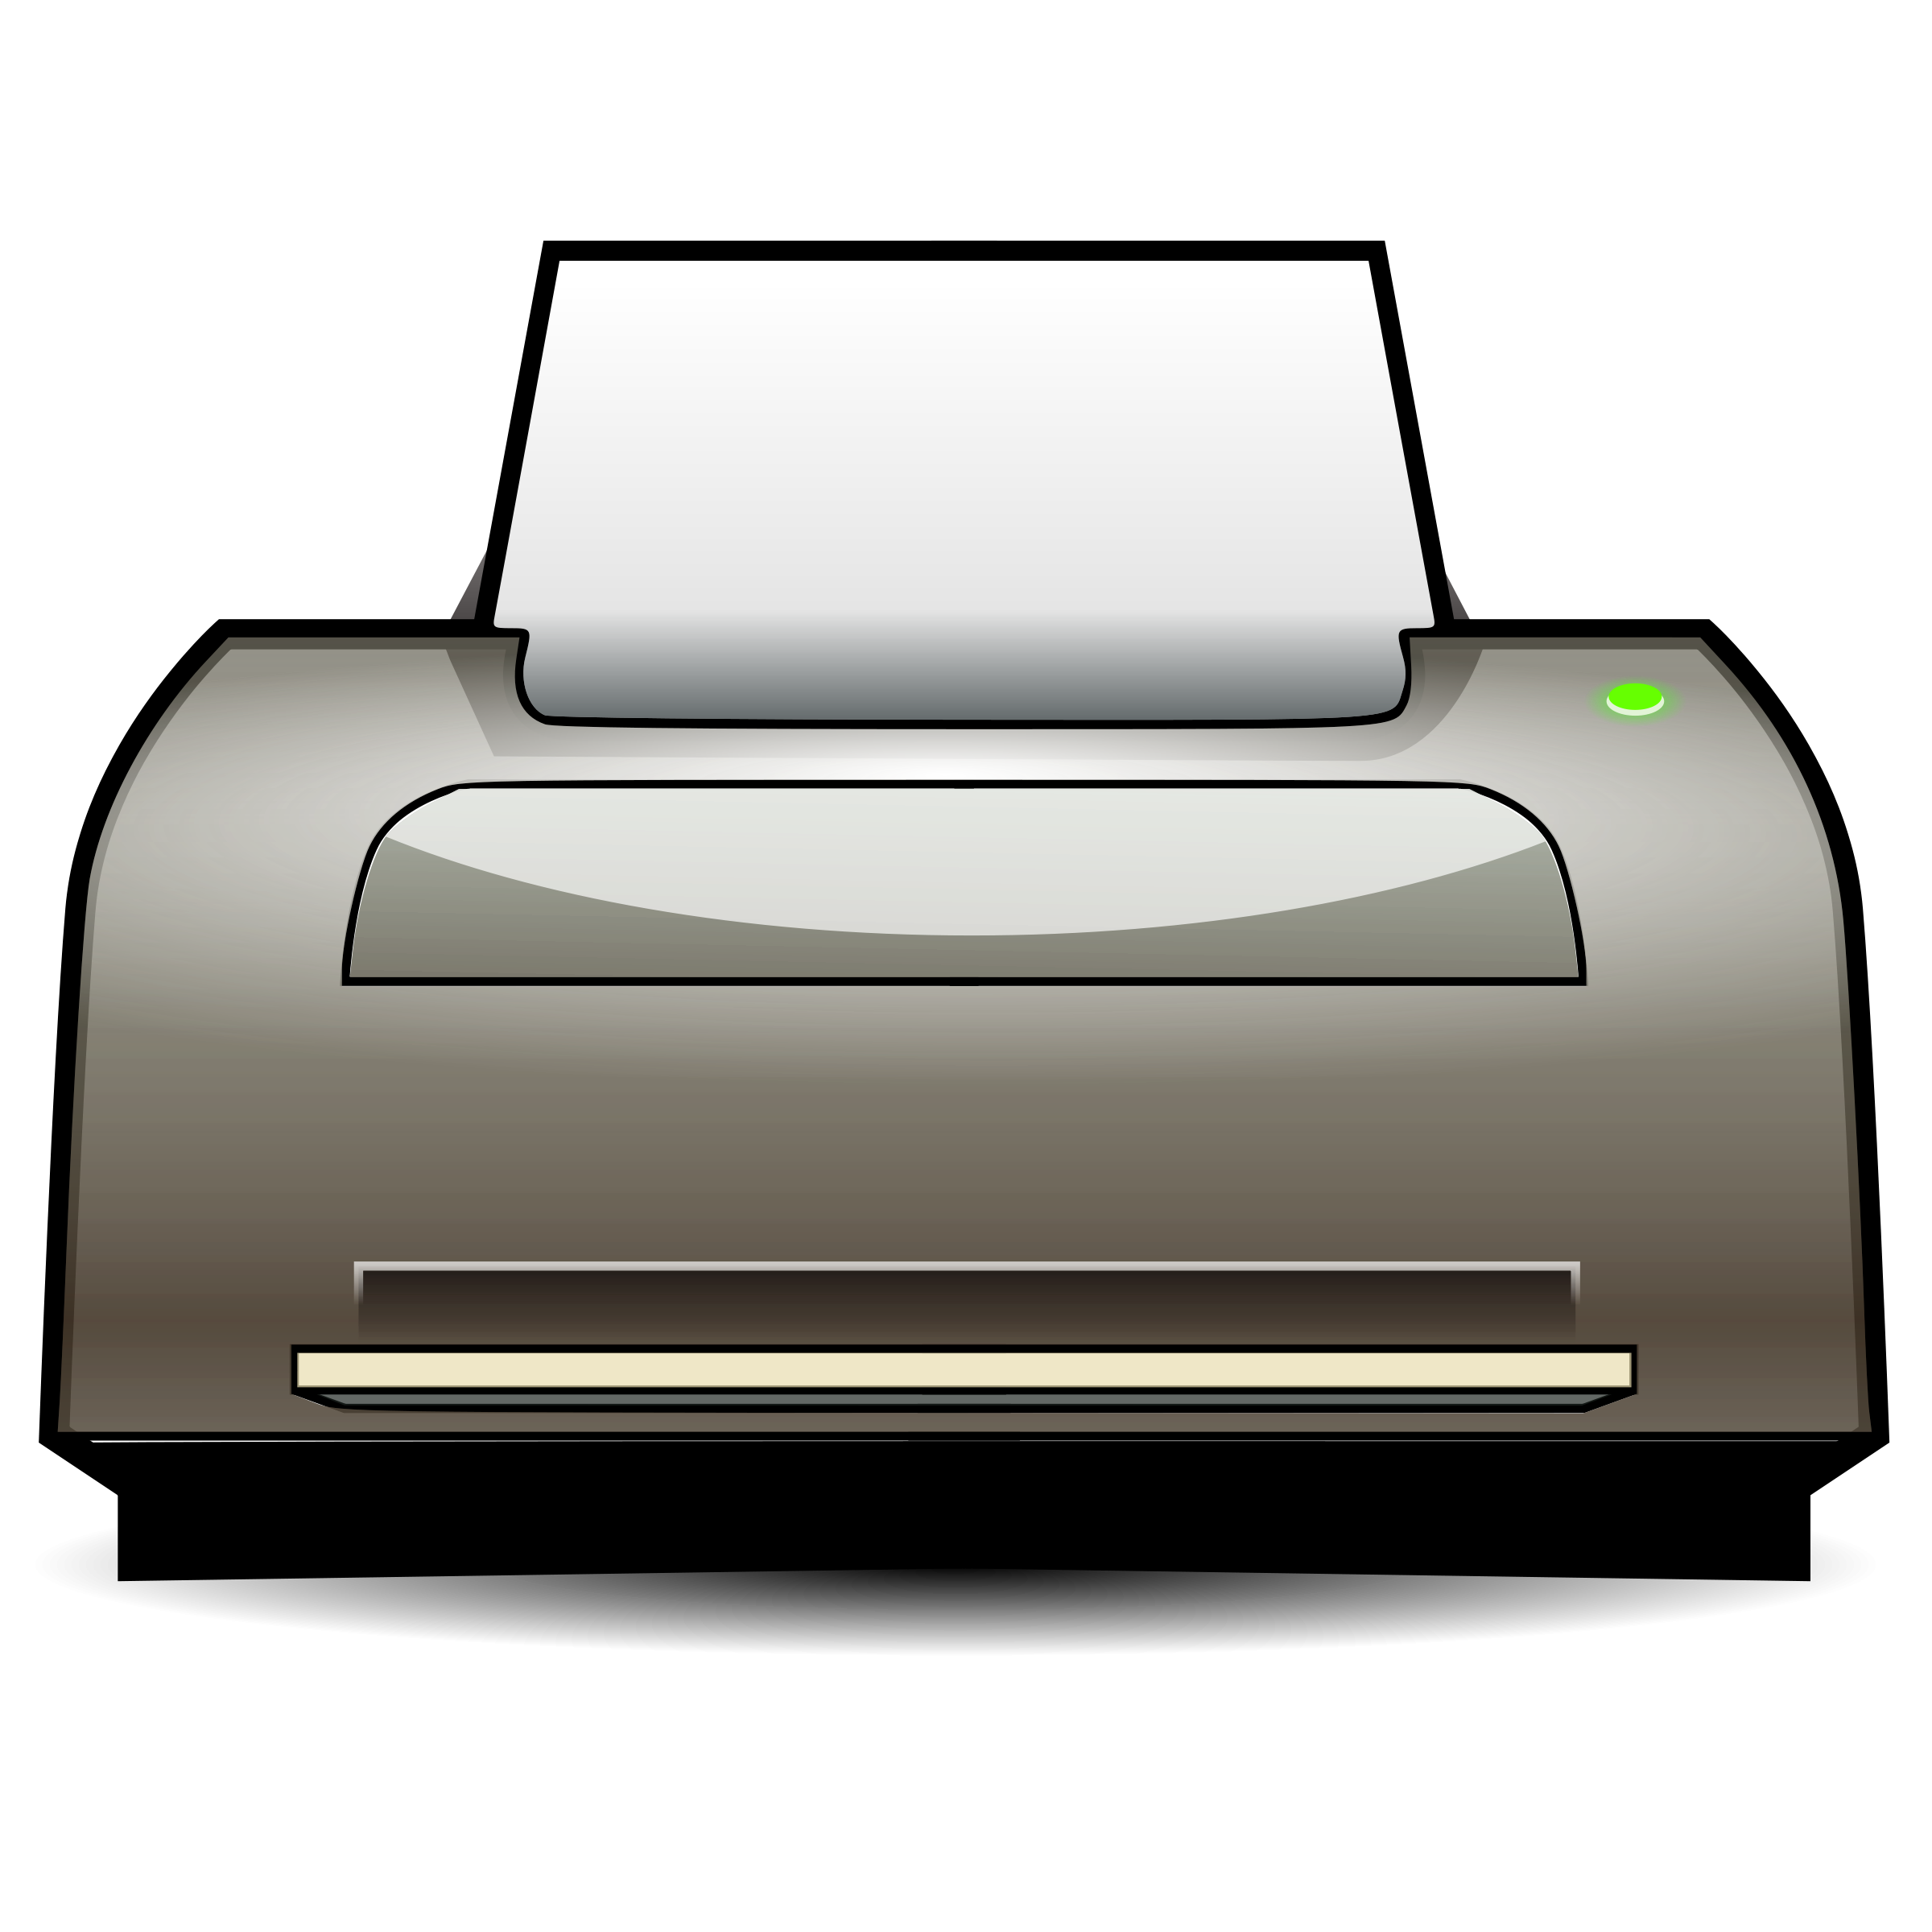 Clipart printer.